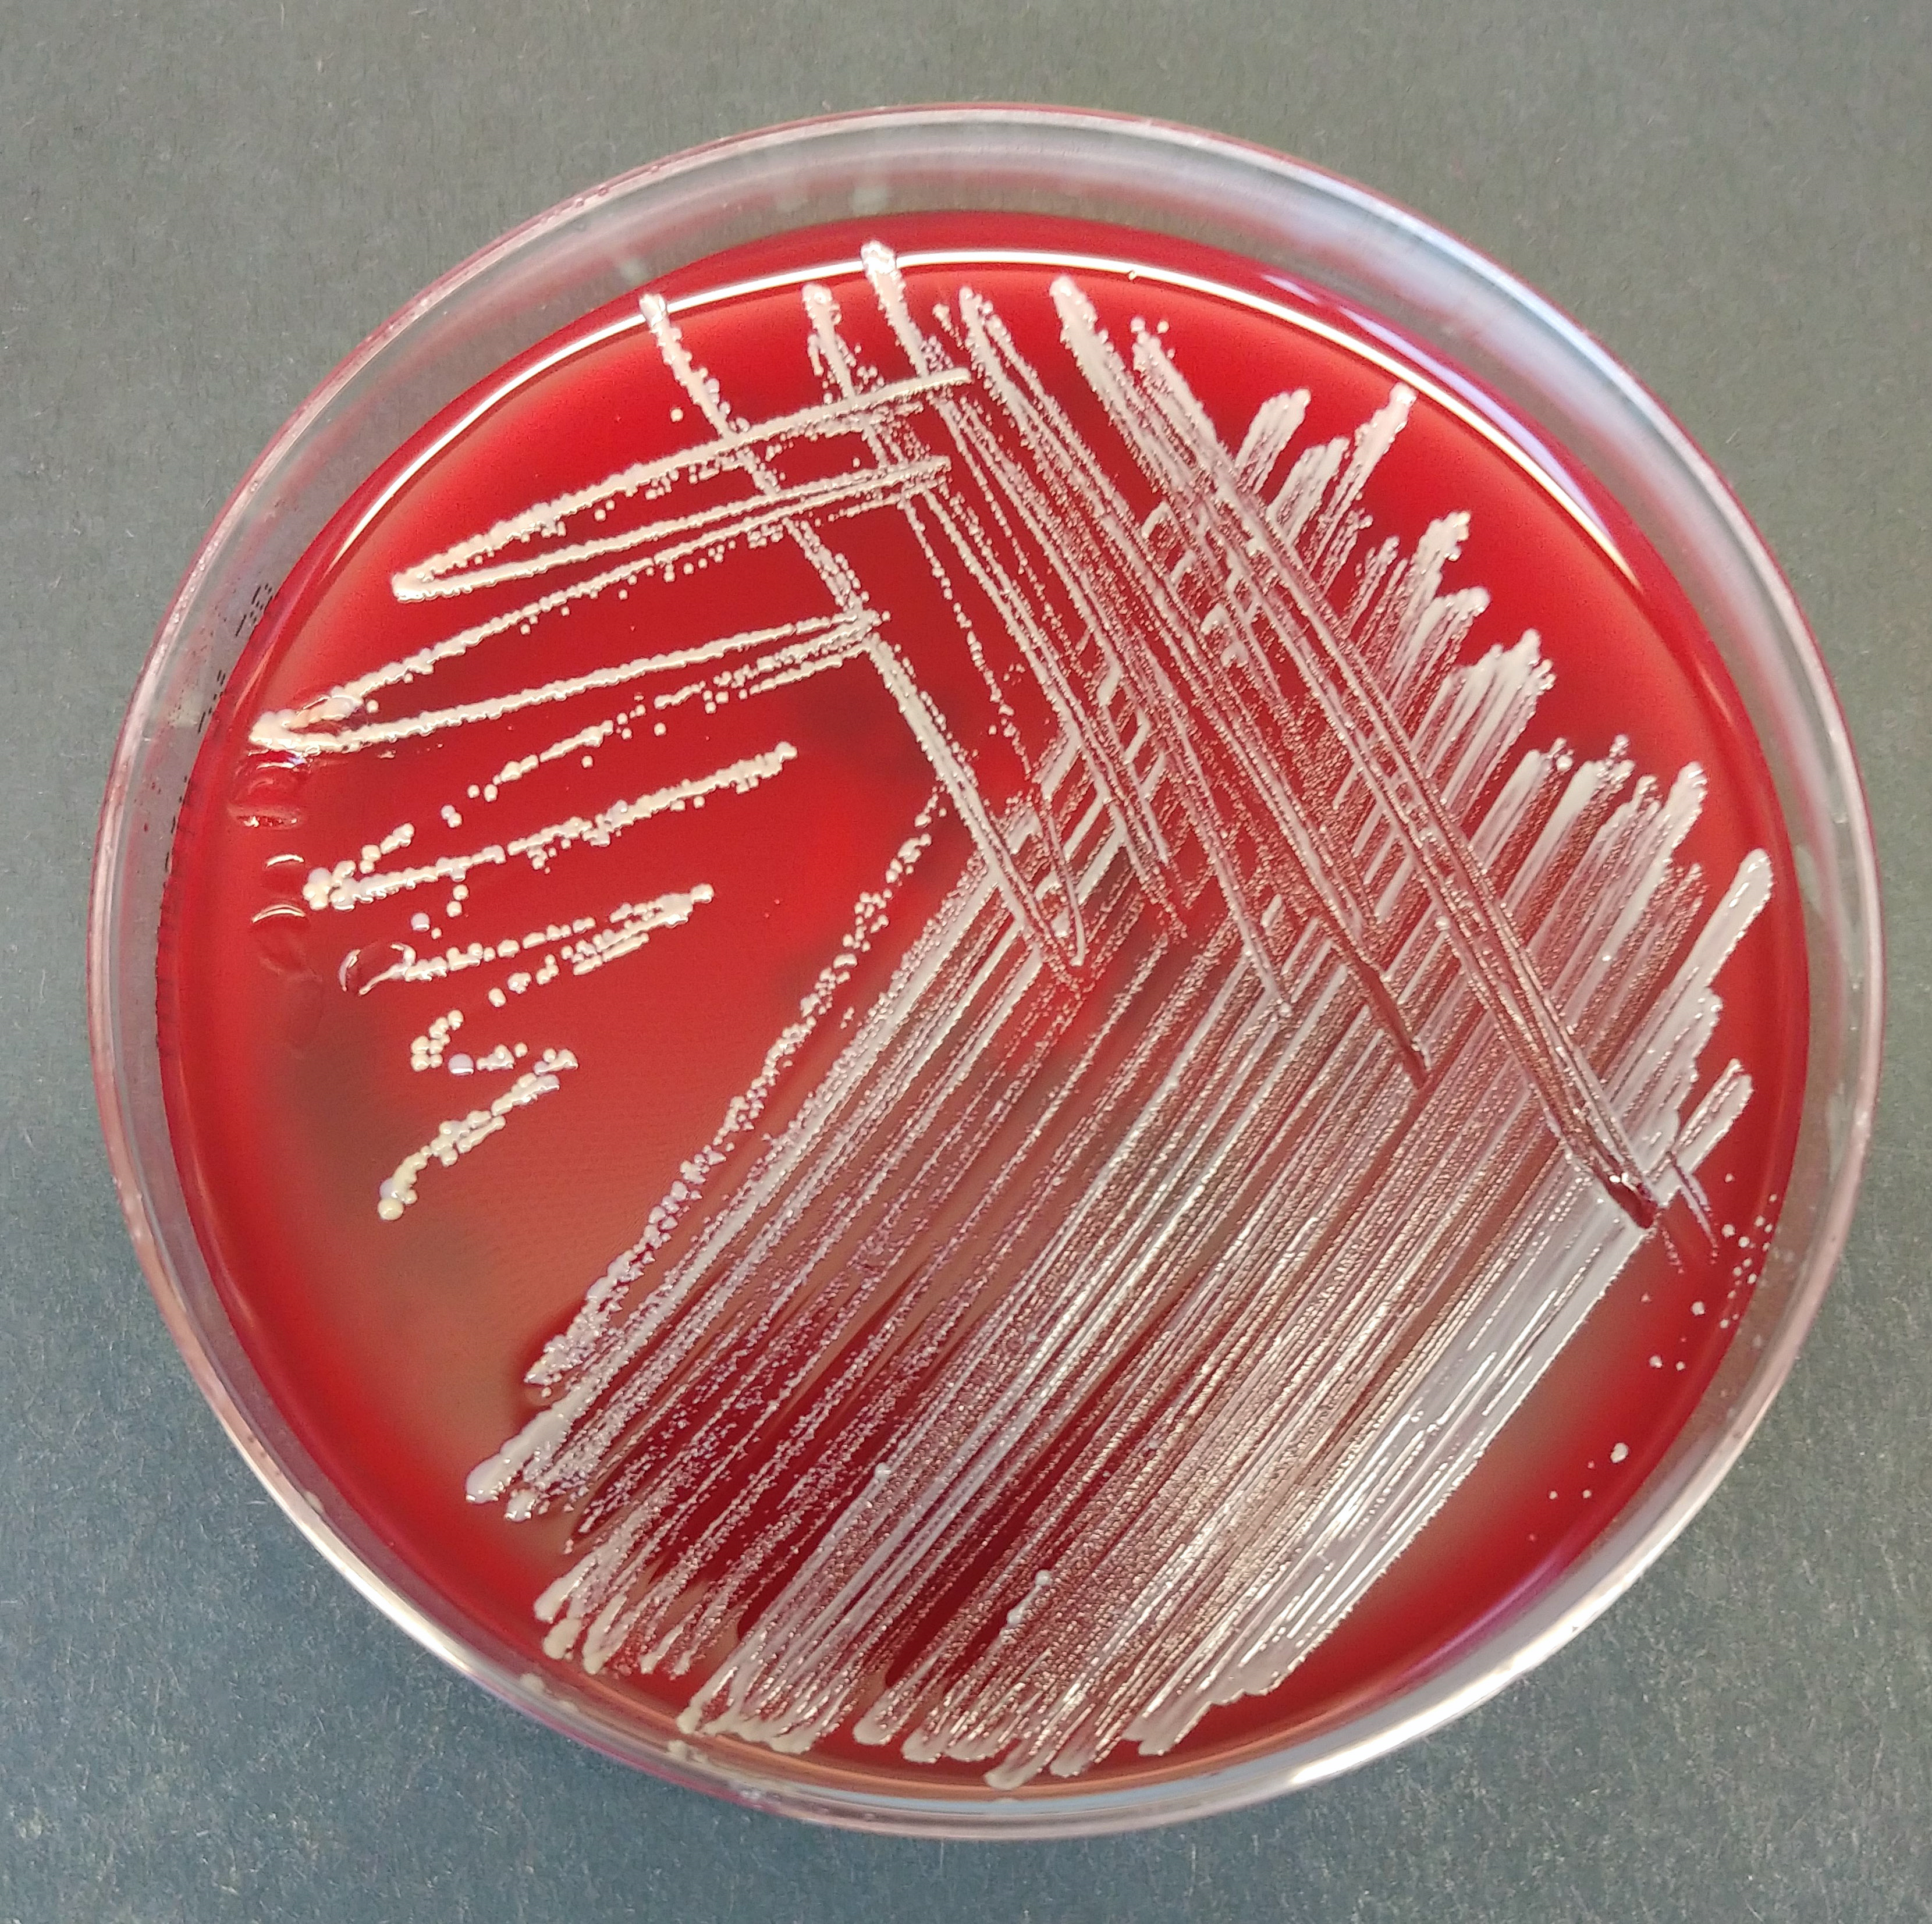 20210616_Staph_plate1.png